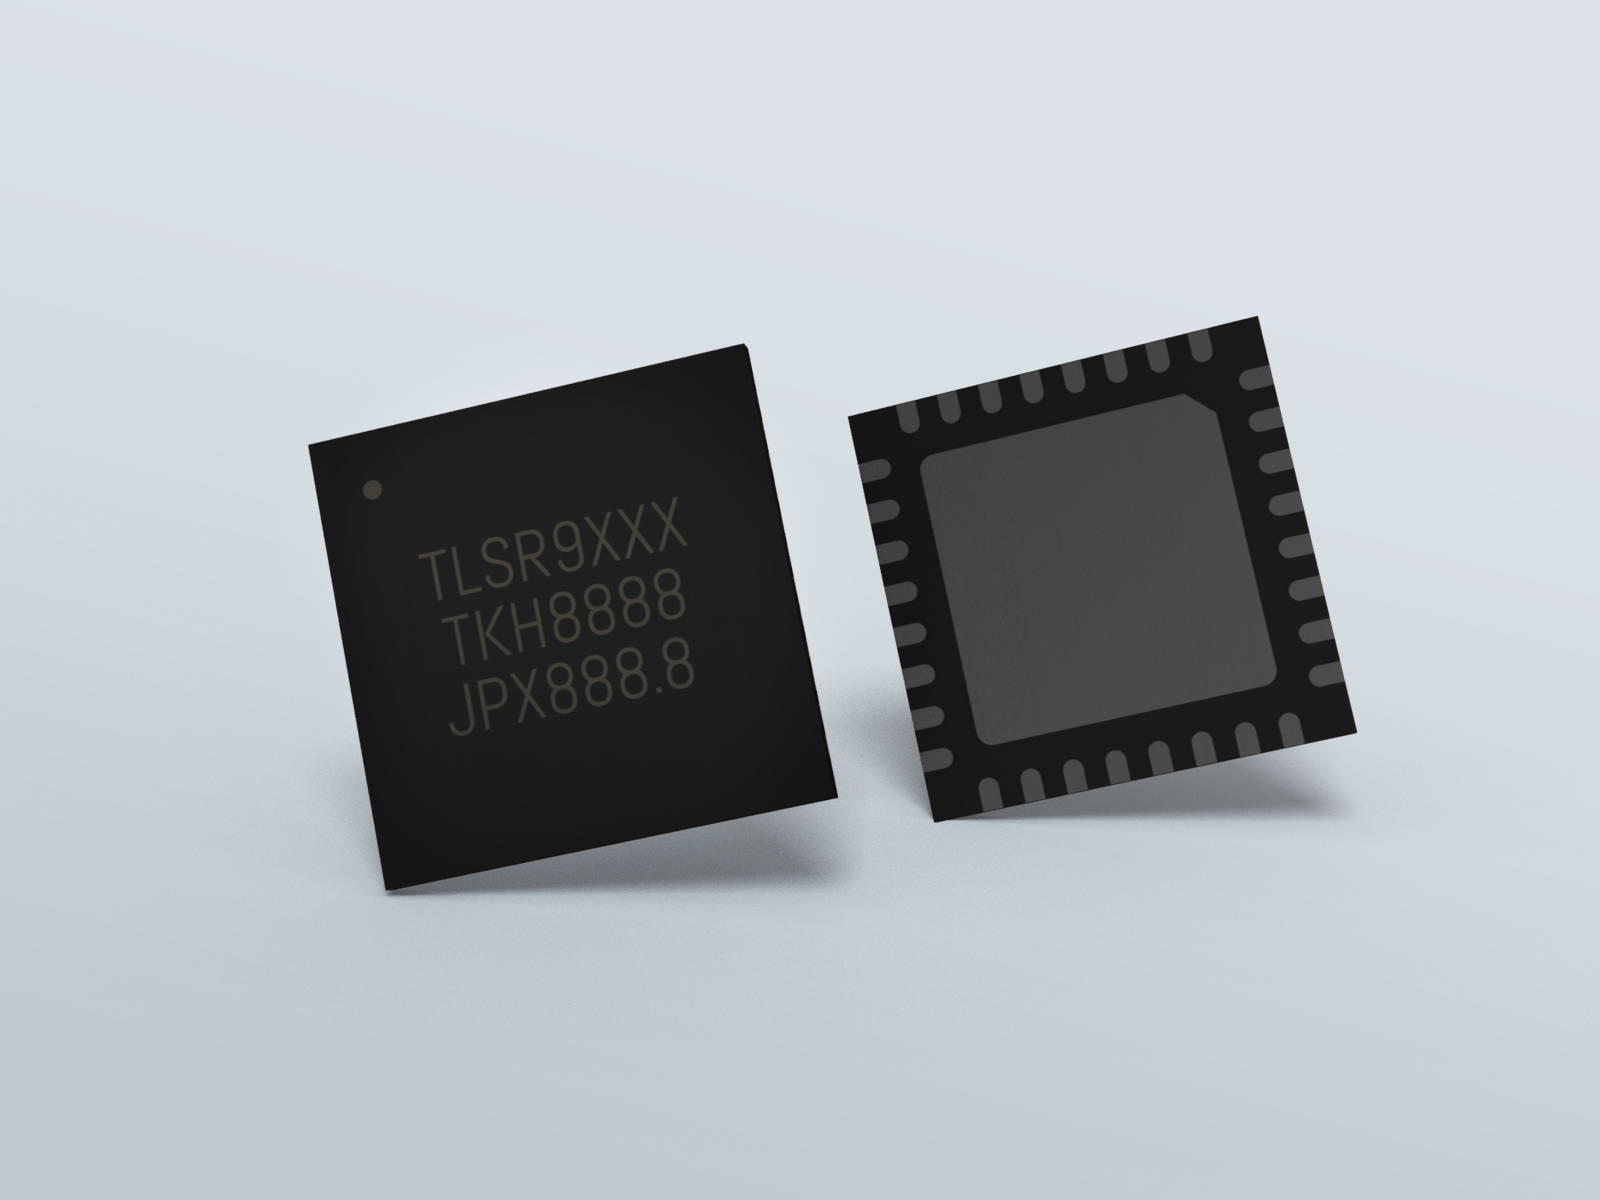 Introducing Telink's New RISC-V-Based TLSR9 Series | Telink